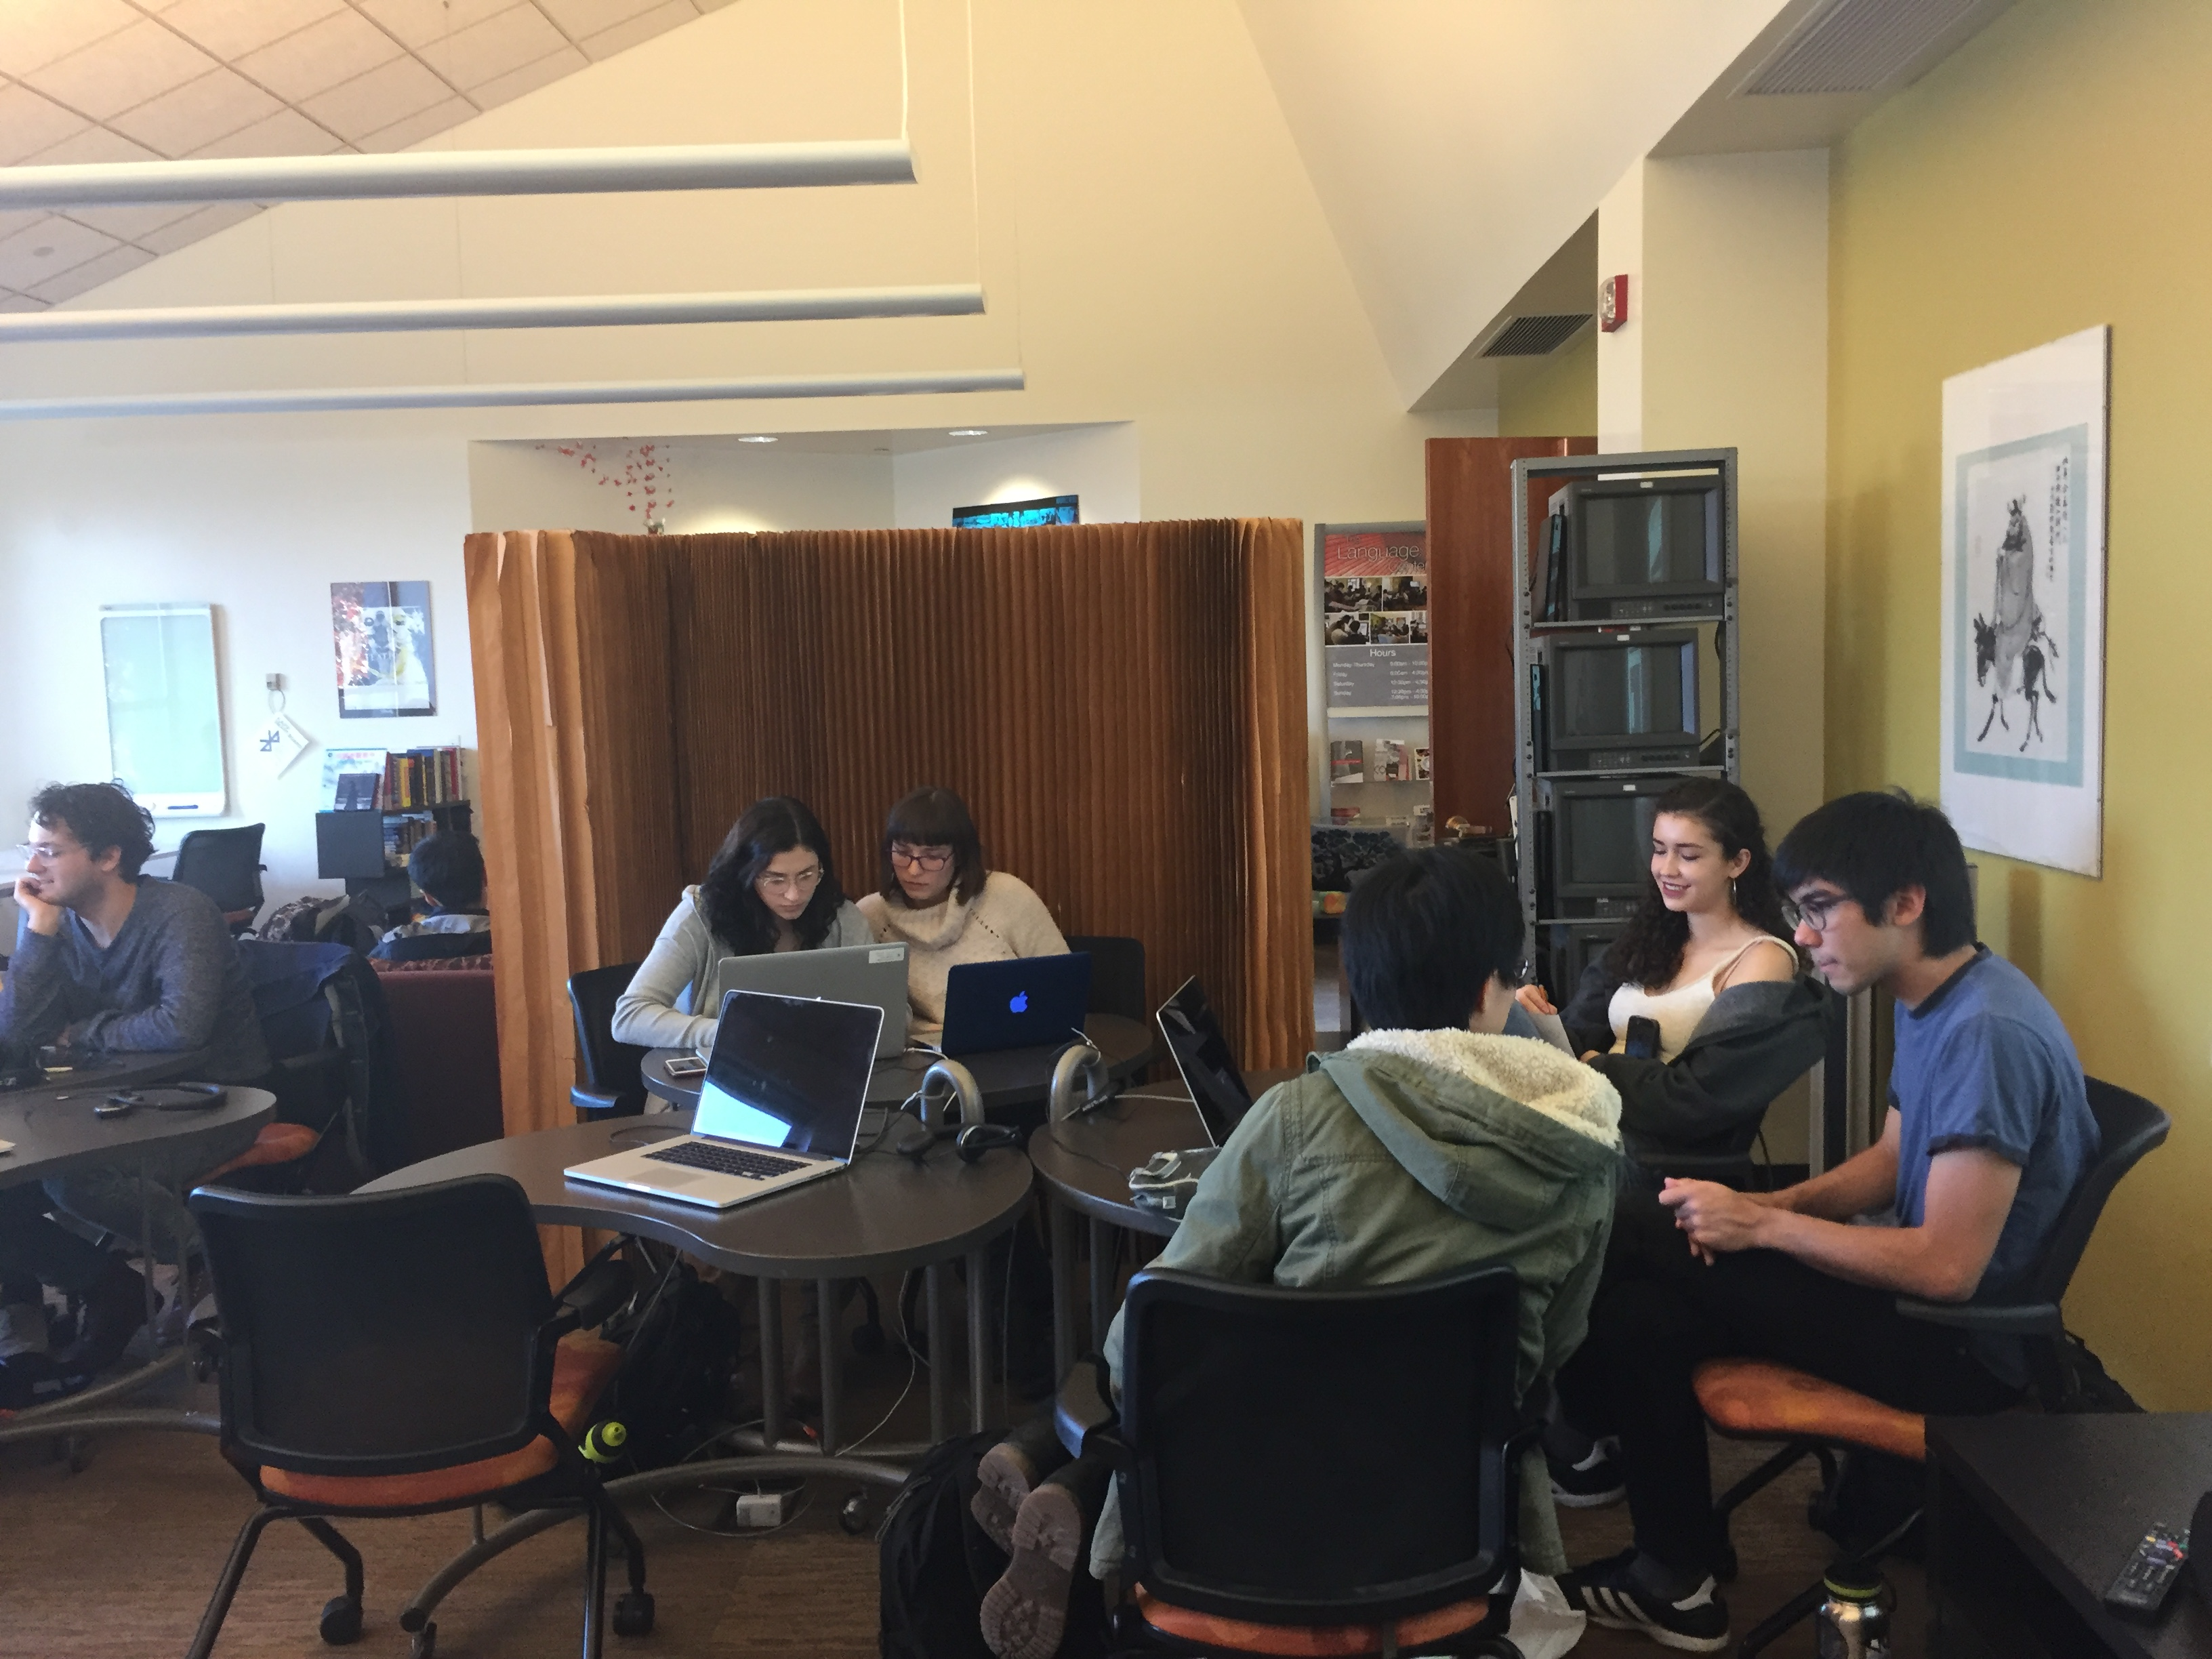 image of five students sitting at two tables (two students at one table, three students at another) in swarthmore's language resource center. the students are smiling and working on collaborative projects.